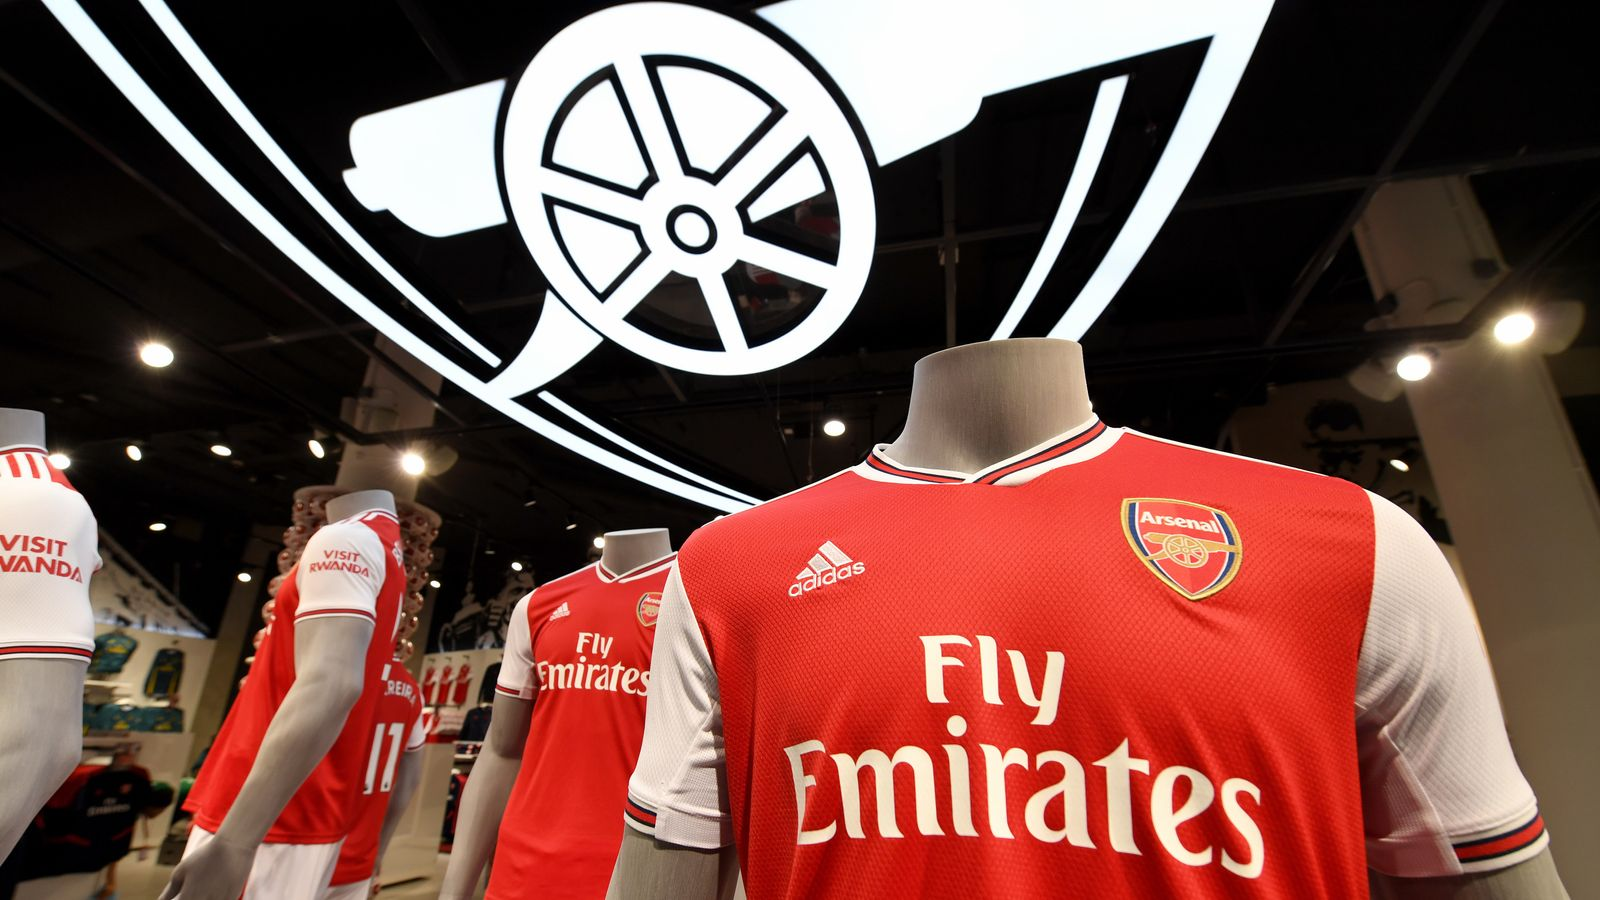 Offensive Messages On Arsenal Kits As Adidas Campaign